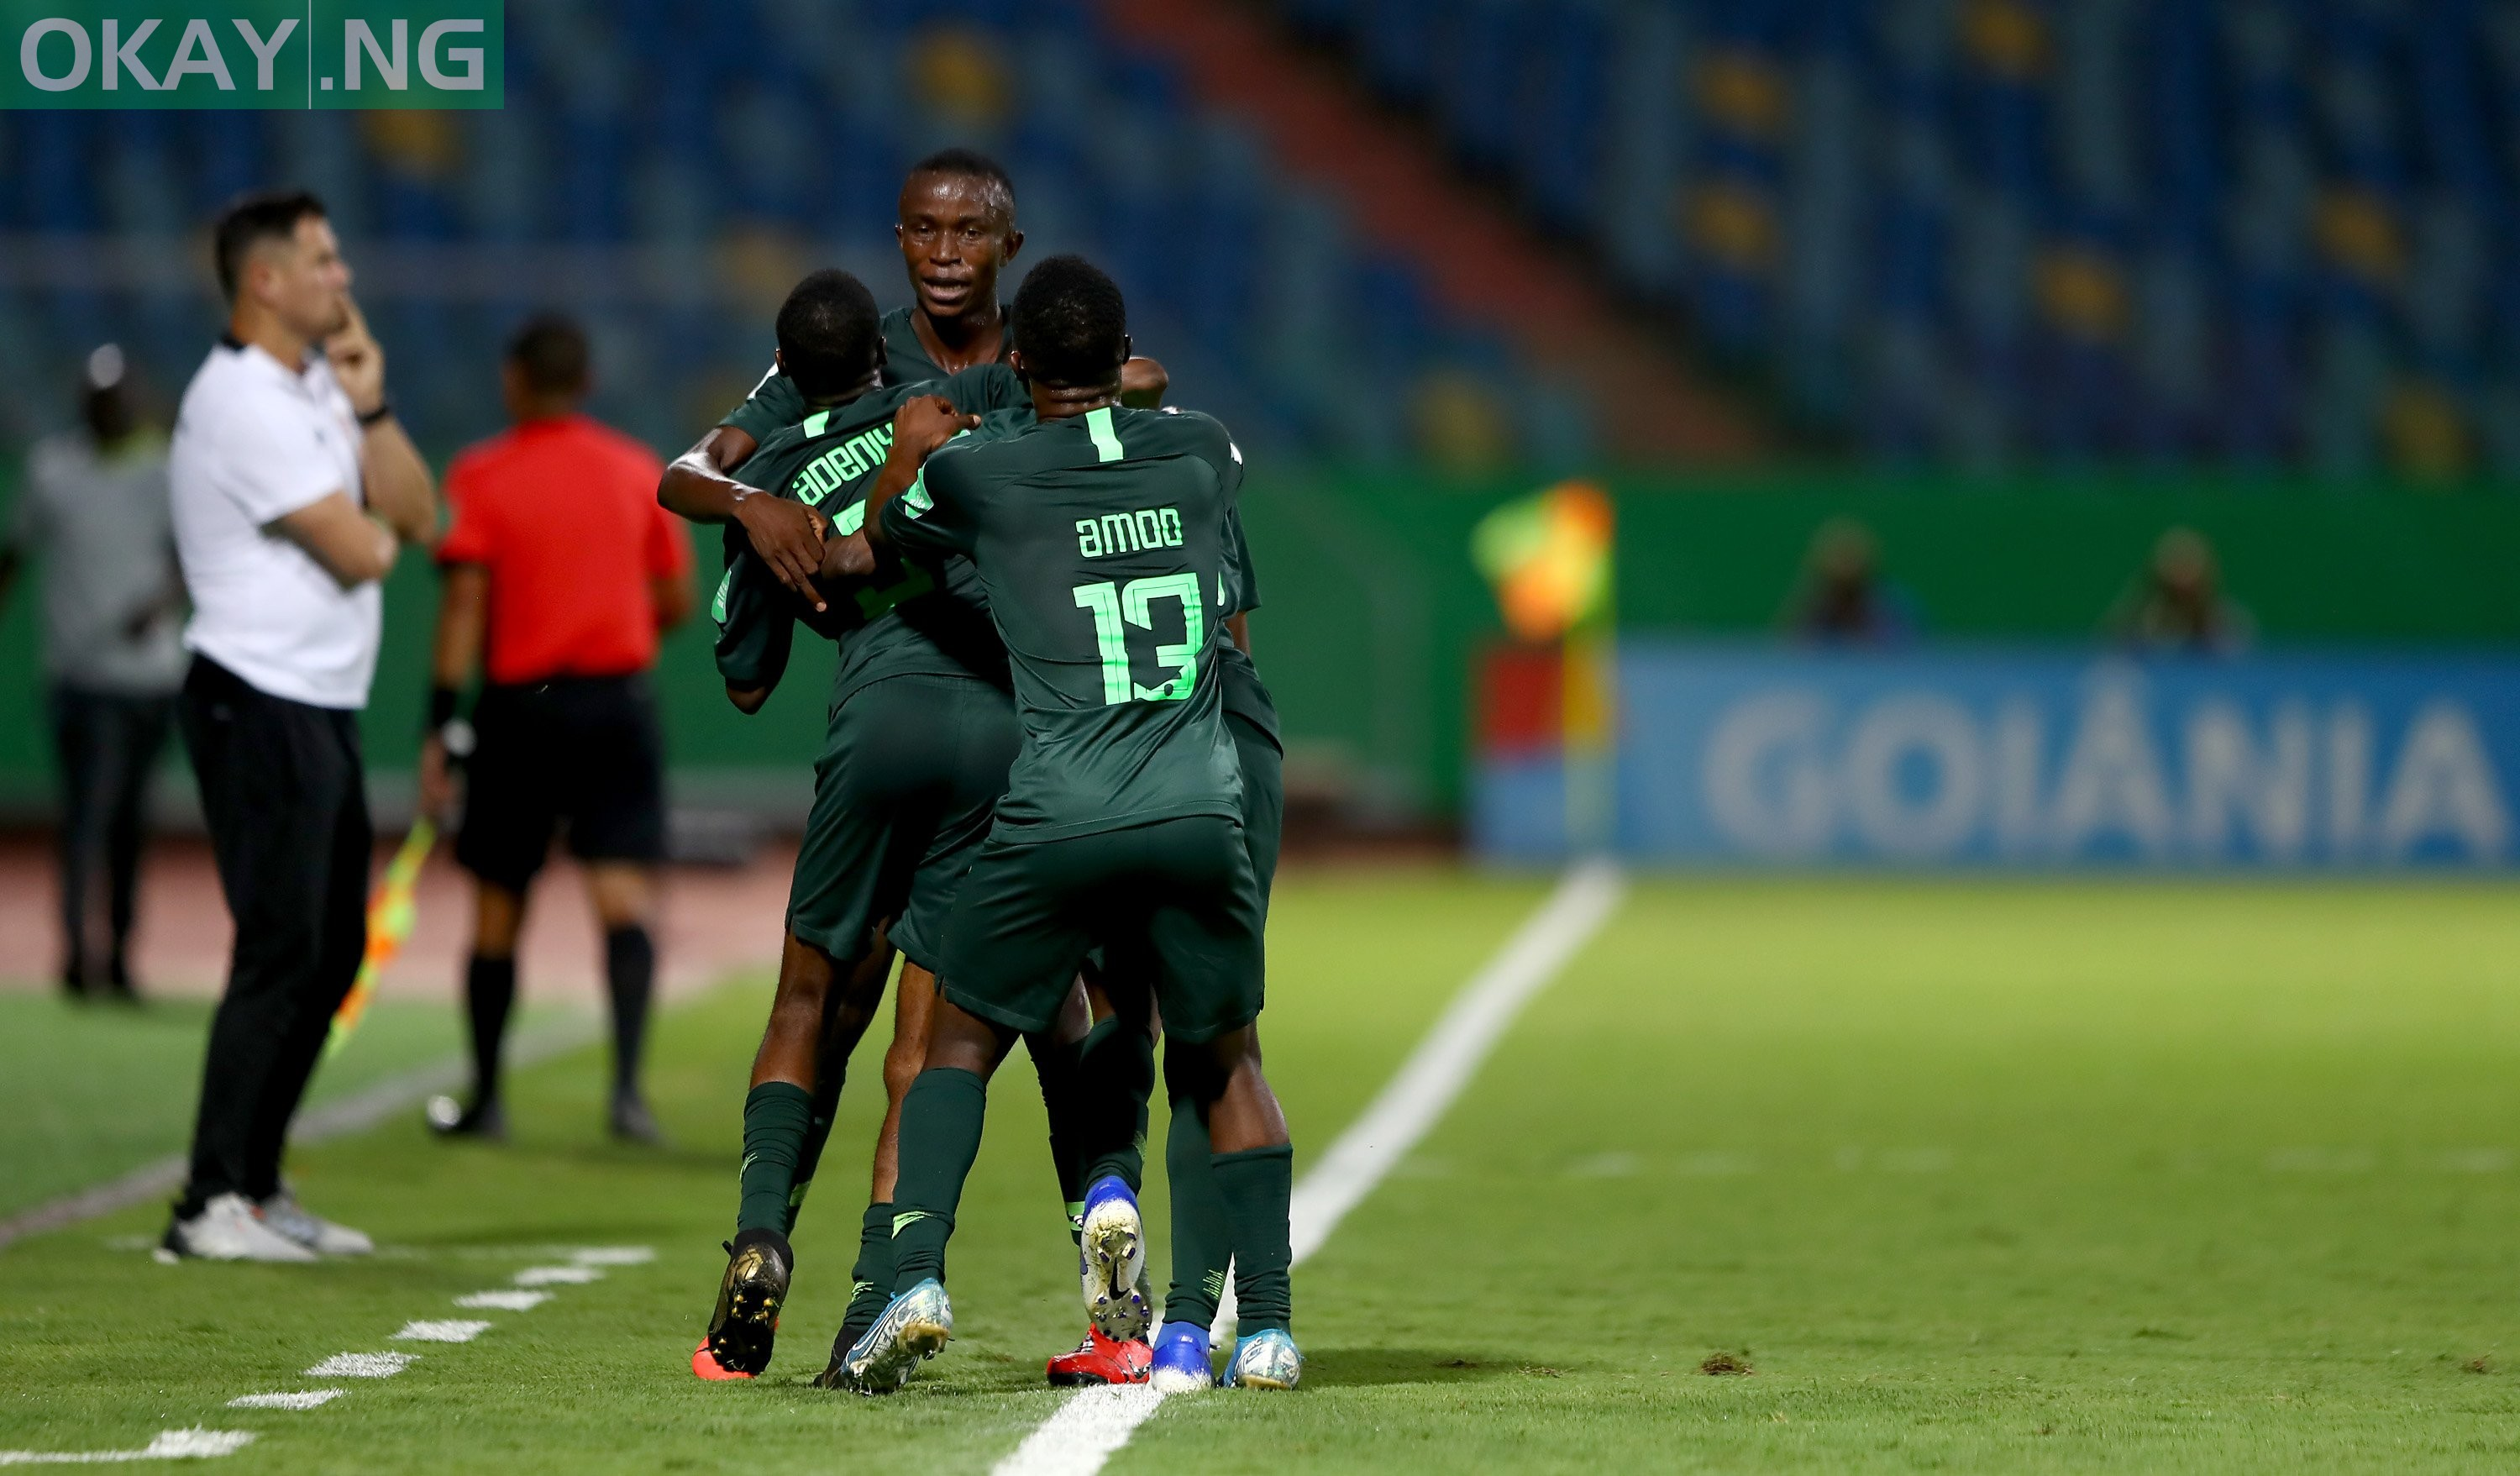 Golden Eaglets of Nigeria celebrating their goal against Hungary